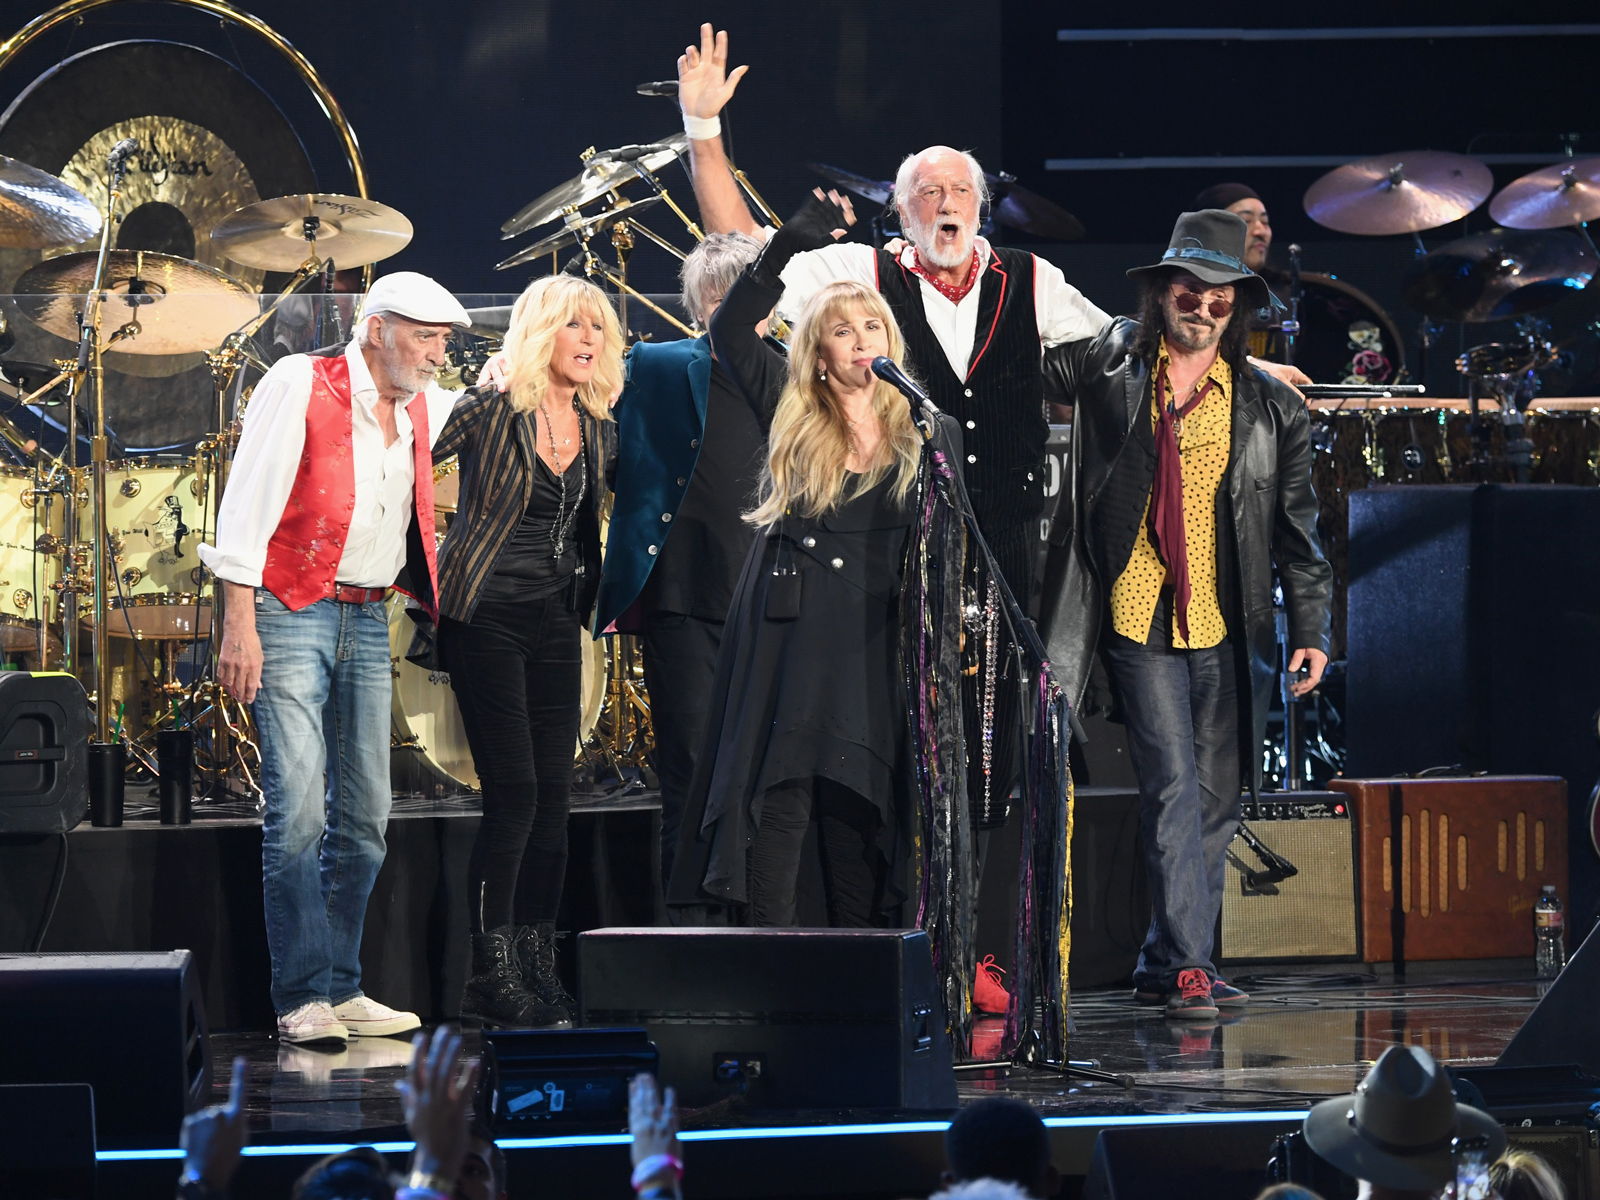 Fleetwood McDonald's Employees Got to Meet Fleetwood Mac